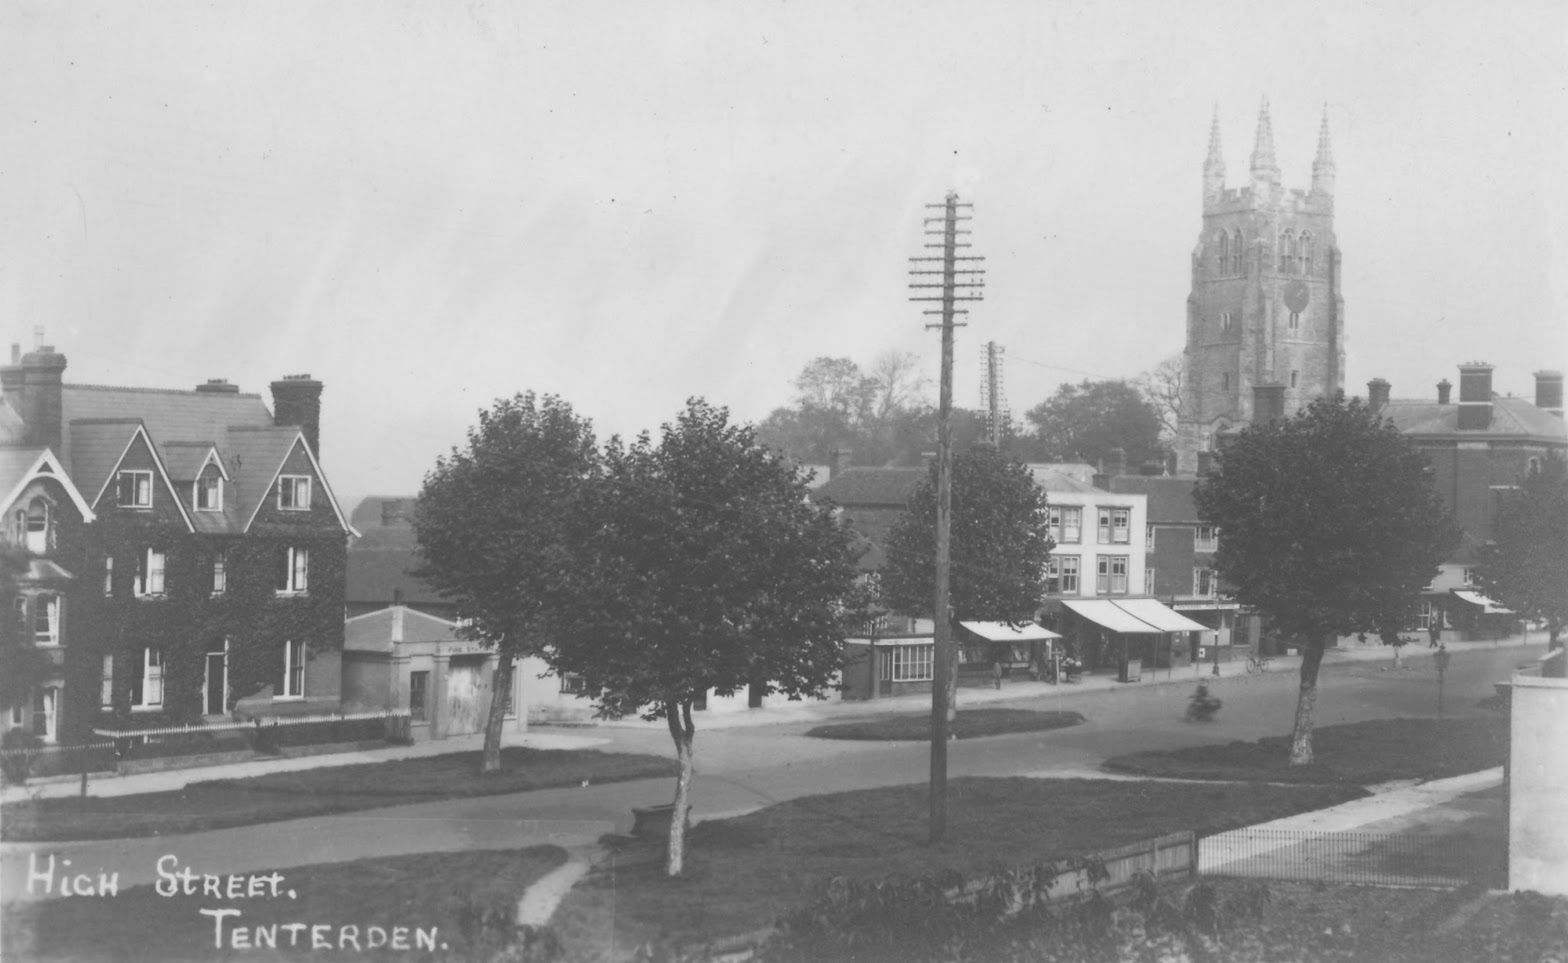 Tenterden Archive photos Lower High Street – Station Road area